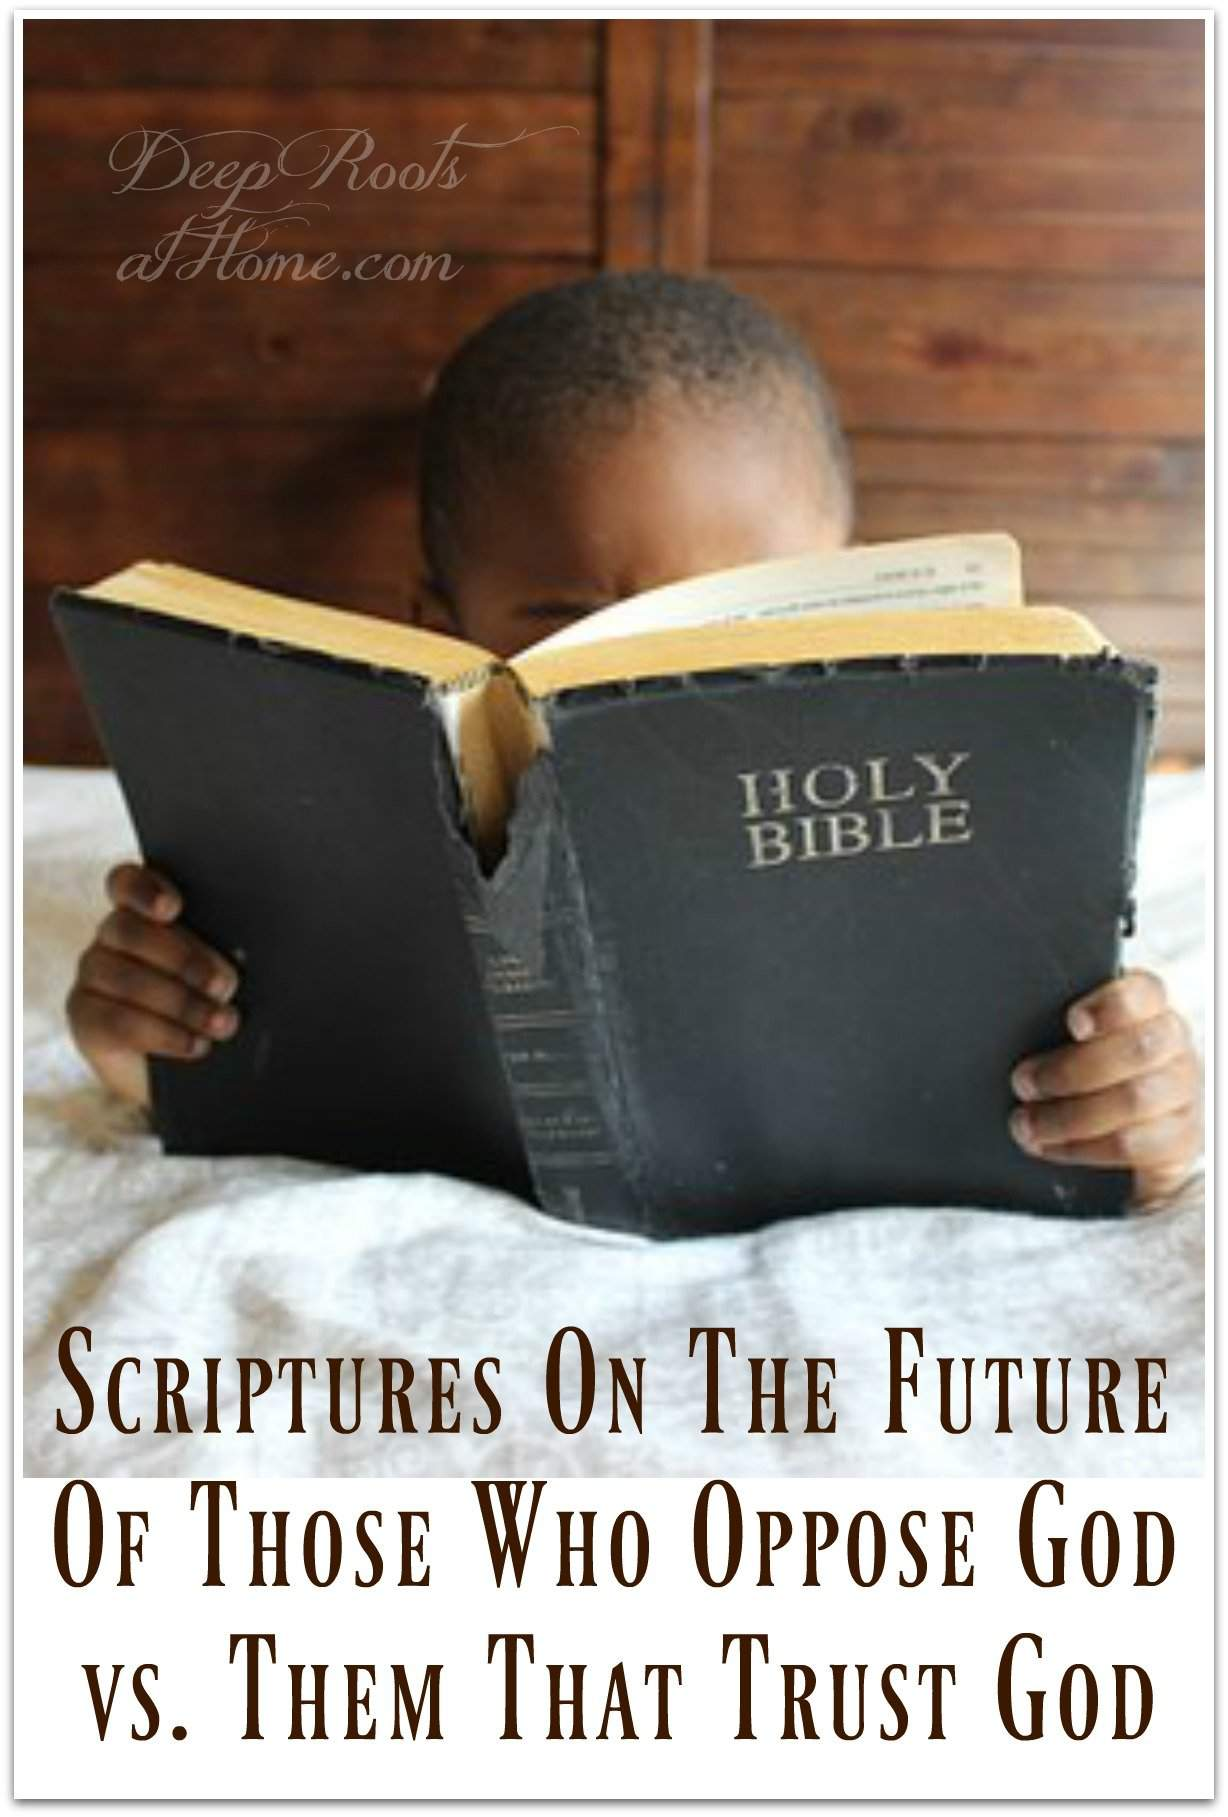 Scriptures on the Future of those who Oppose God vs. them that Trust God. A young boy reading a tattered Bible